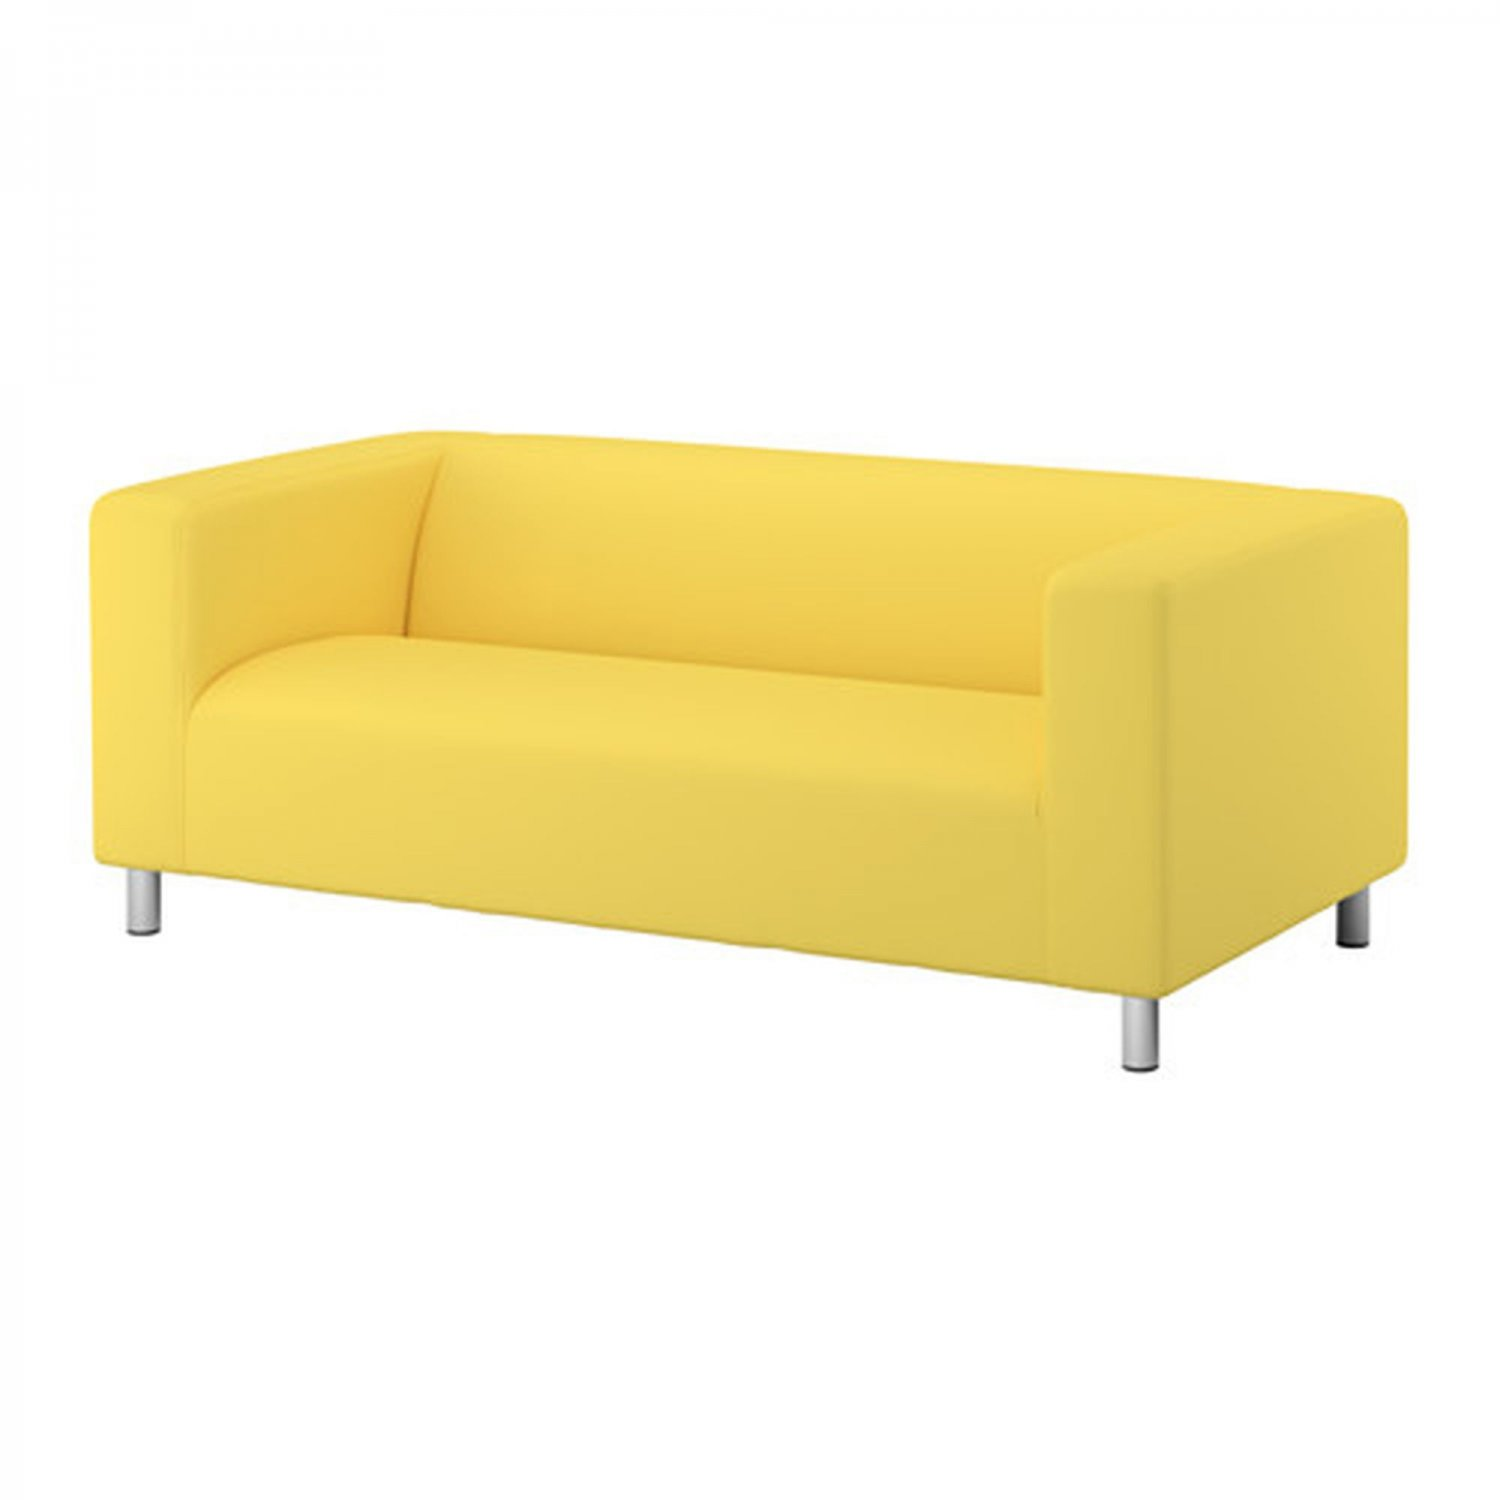 Ikea klippan loveseat sofa slipcover cover vissle yellow Klippan loveseat covers